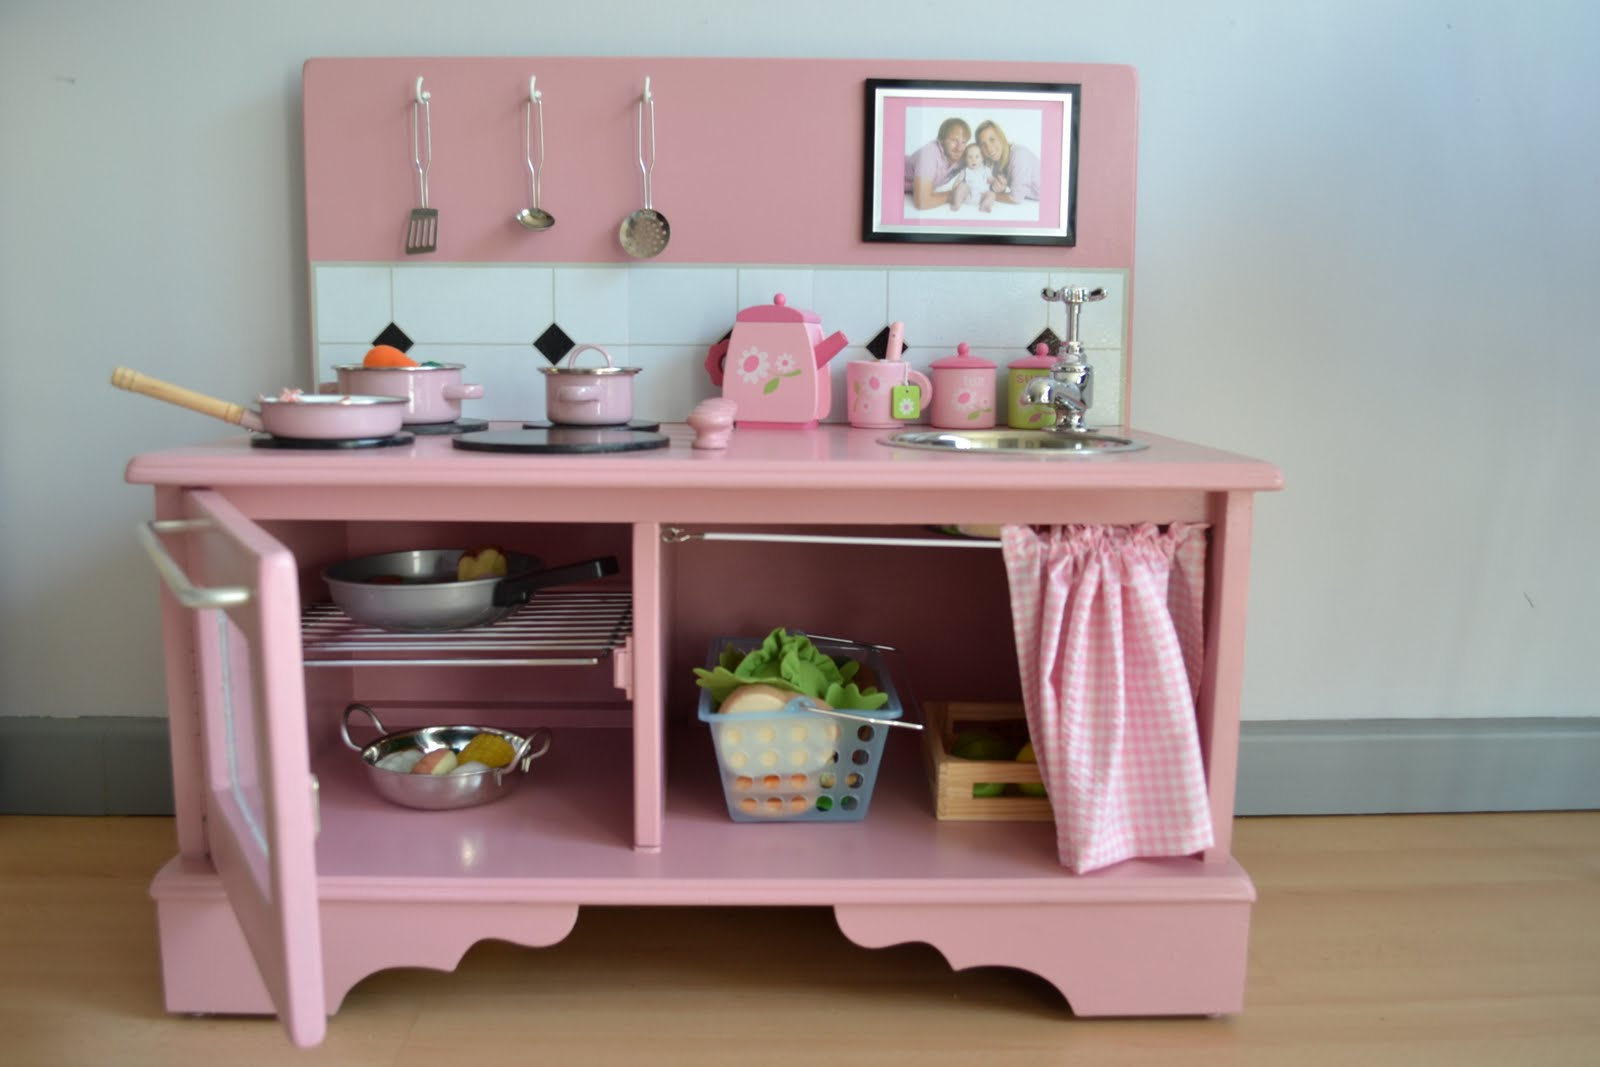 Childrens Wooden Kitchen Furniture Crafts Handmade Wooden Play Kitchen Cocinita De Madera Hecha A